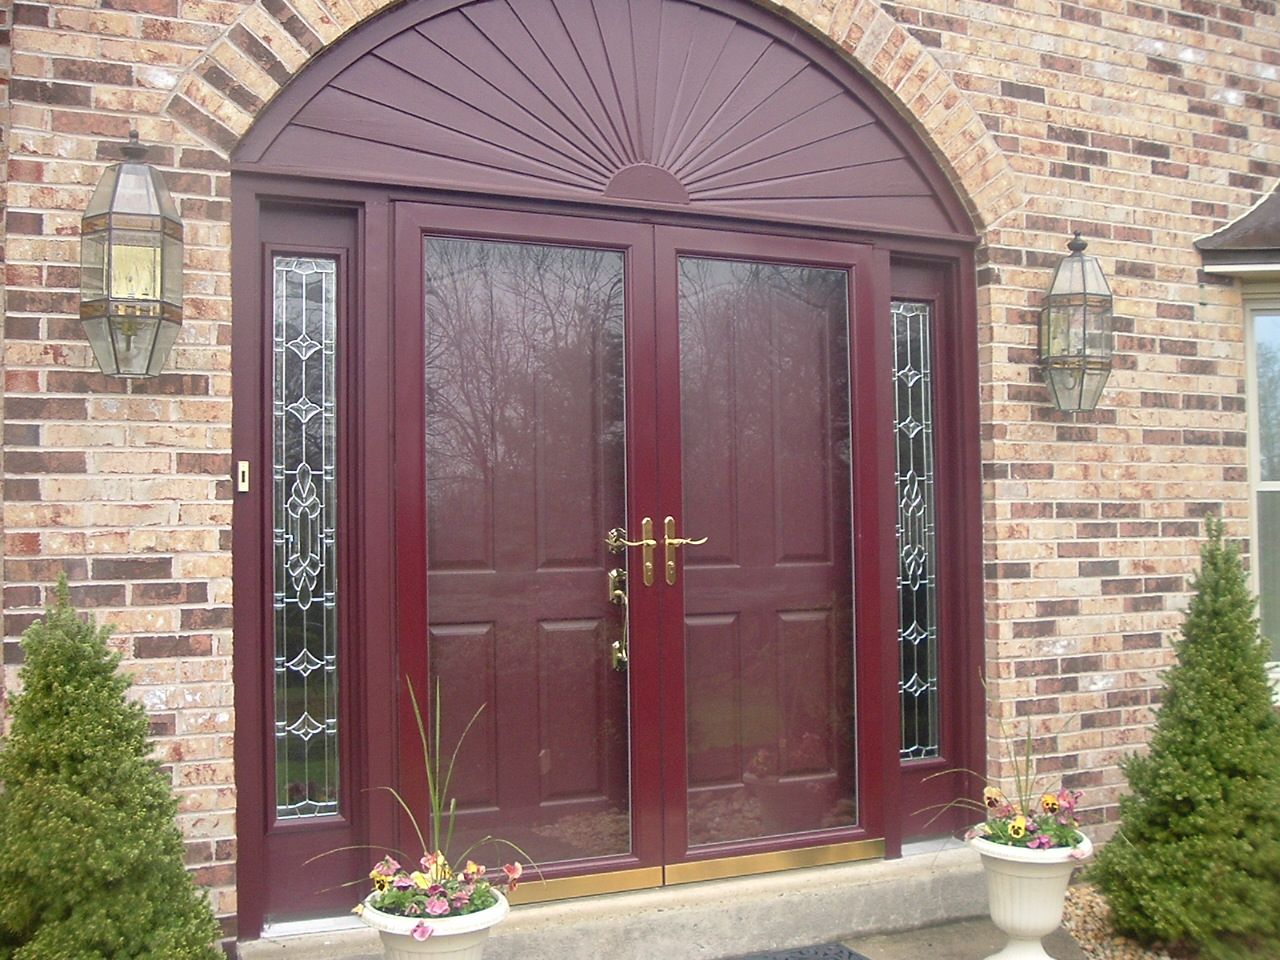 Storm doors rockton il kobyco replacement windows interior and exterior doors closet organizers and more serving rockford il and surrounding areas